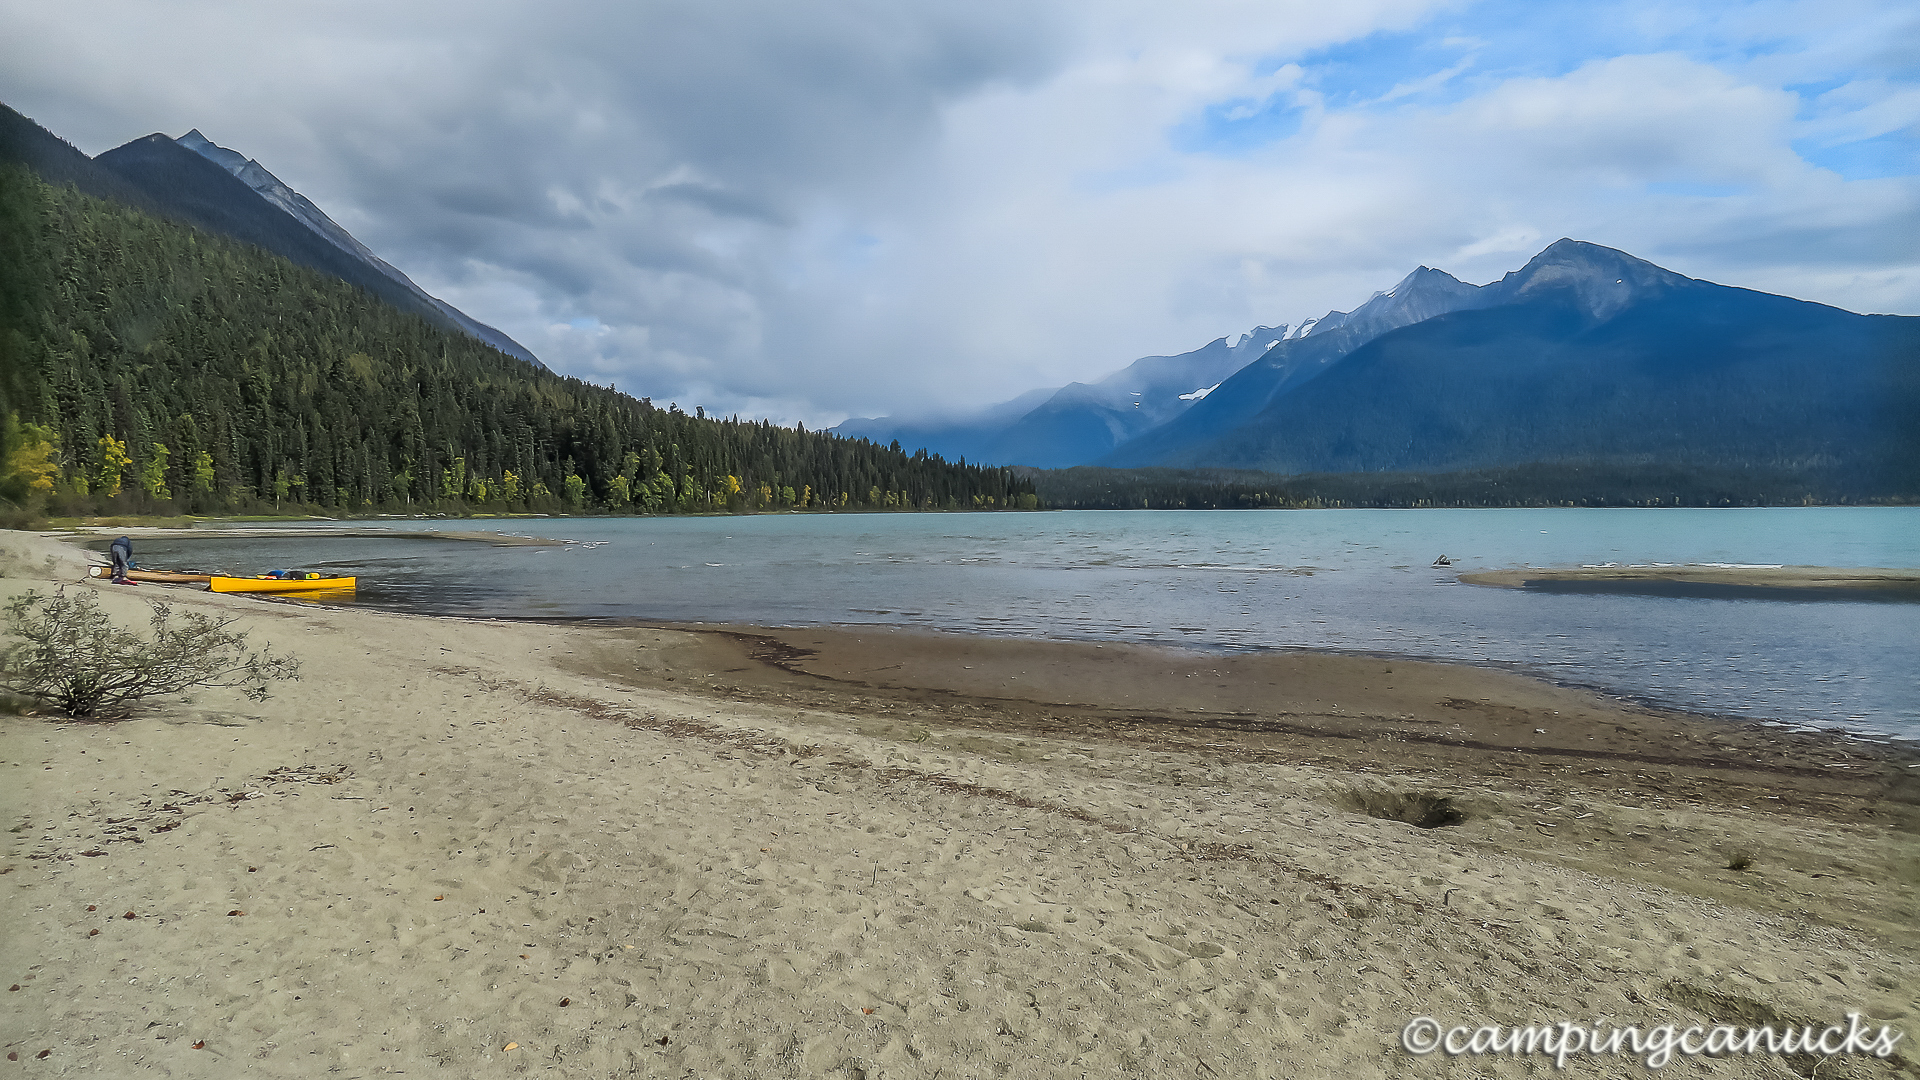 One of the beaches along Sandy Lake